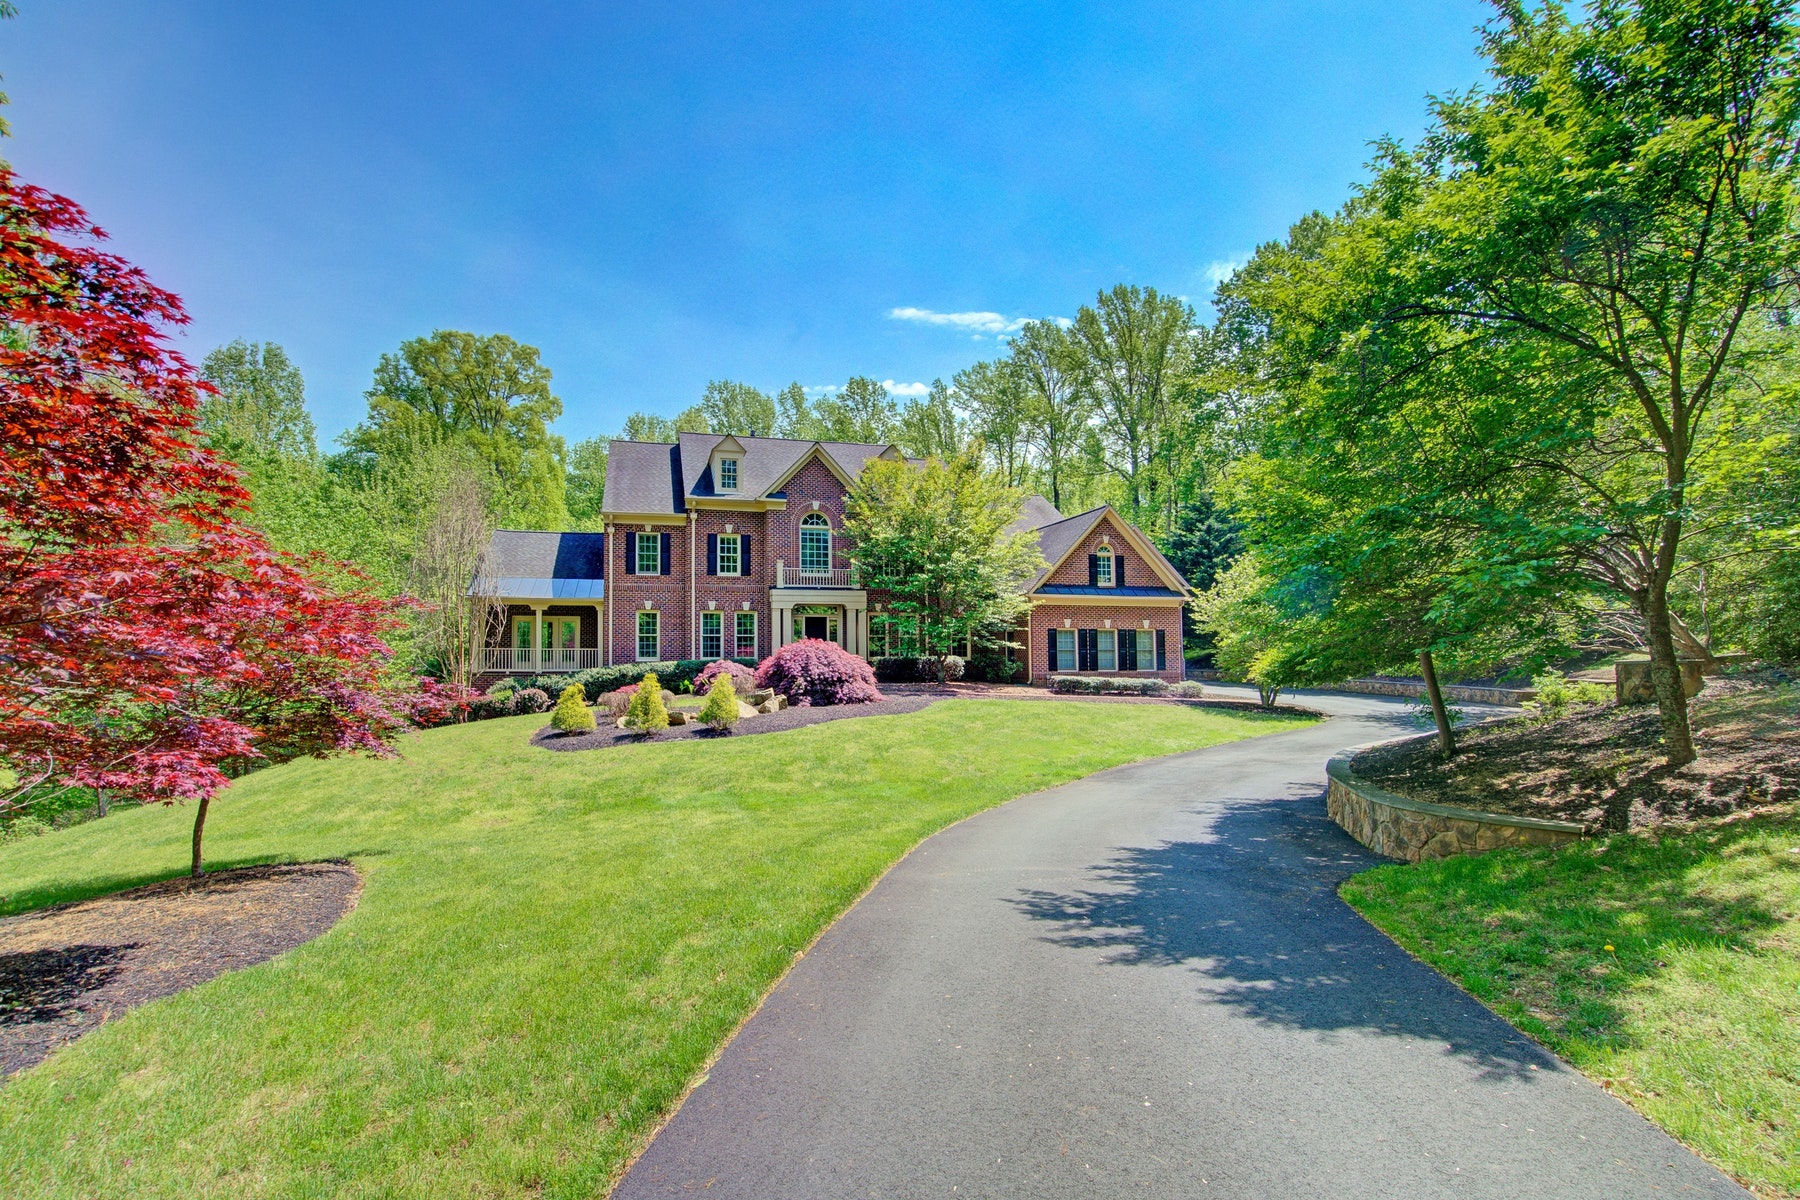 Single Family Homes for Active at Stately Brick Grand Monet 16886 Bold Venture Drive Leesburg, Virginia 20176 United States